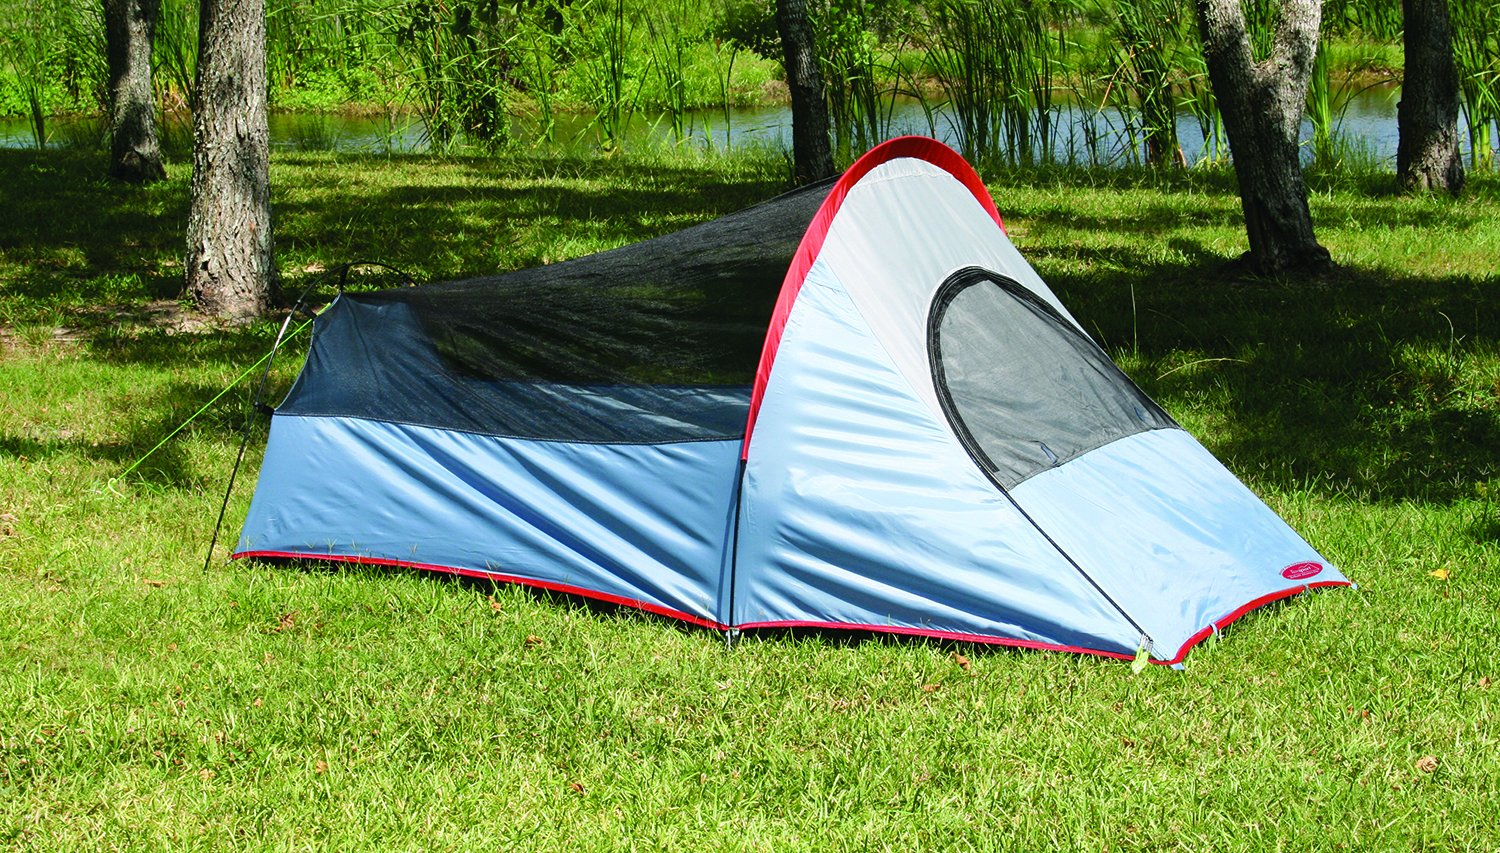 Bivy Tent Reviews: Texsport Saguaro Bivy Shelter Tent